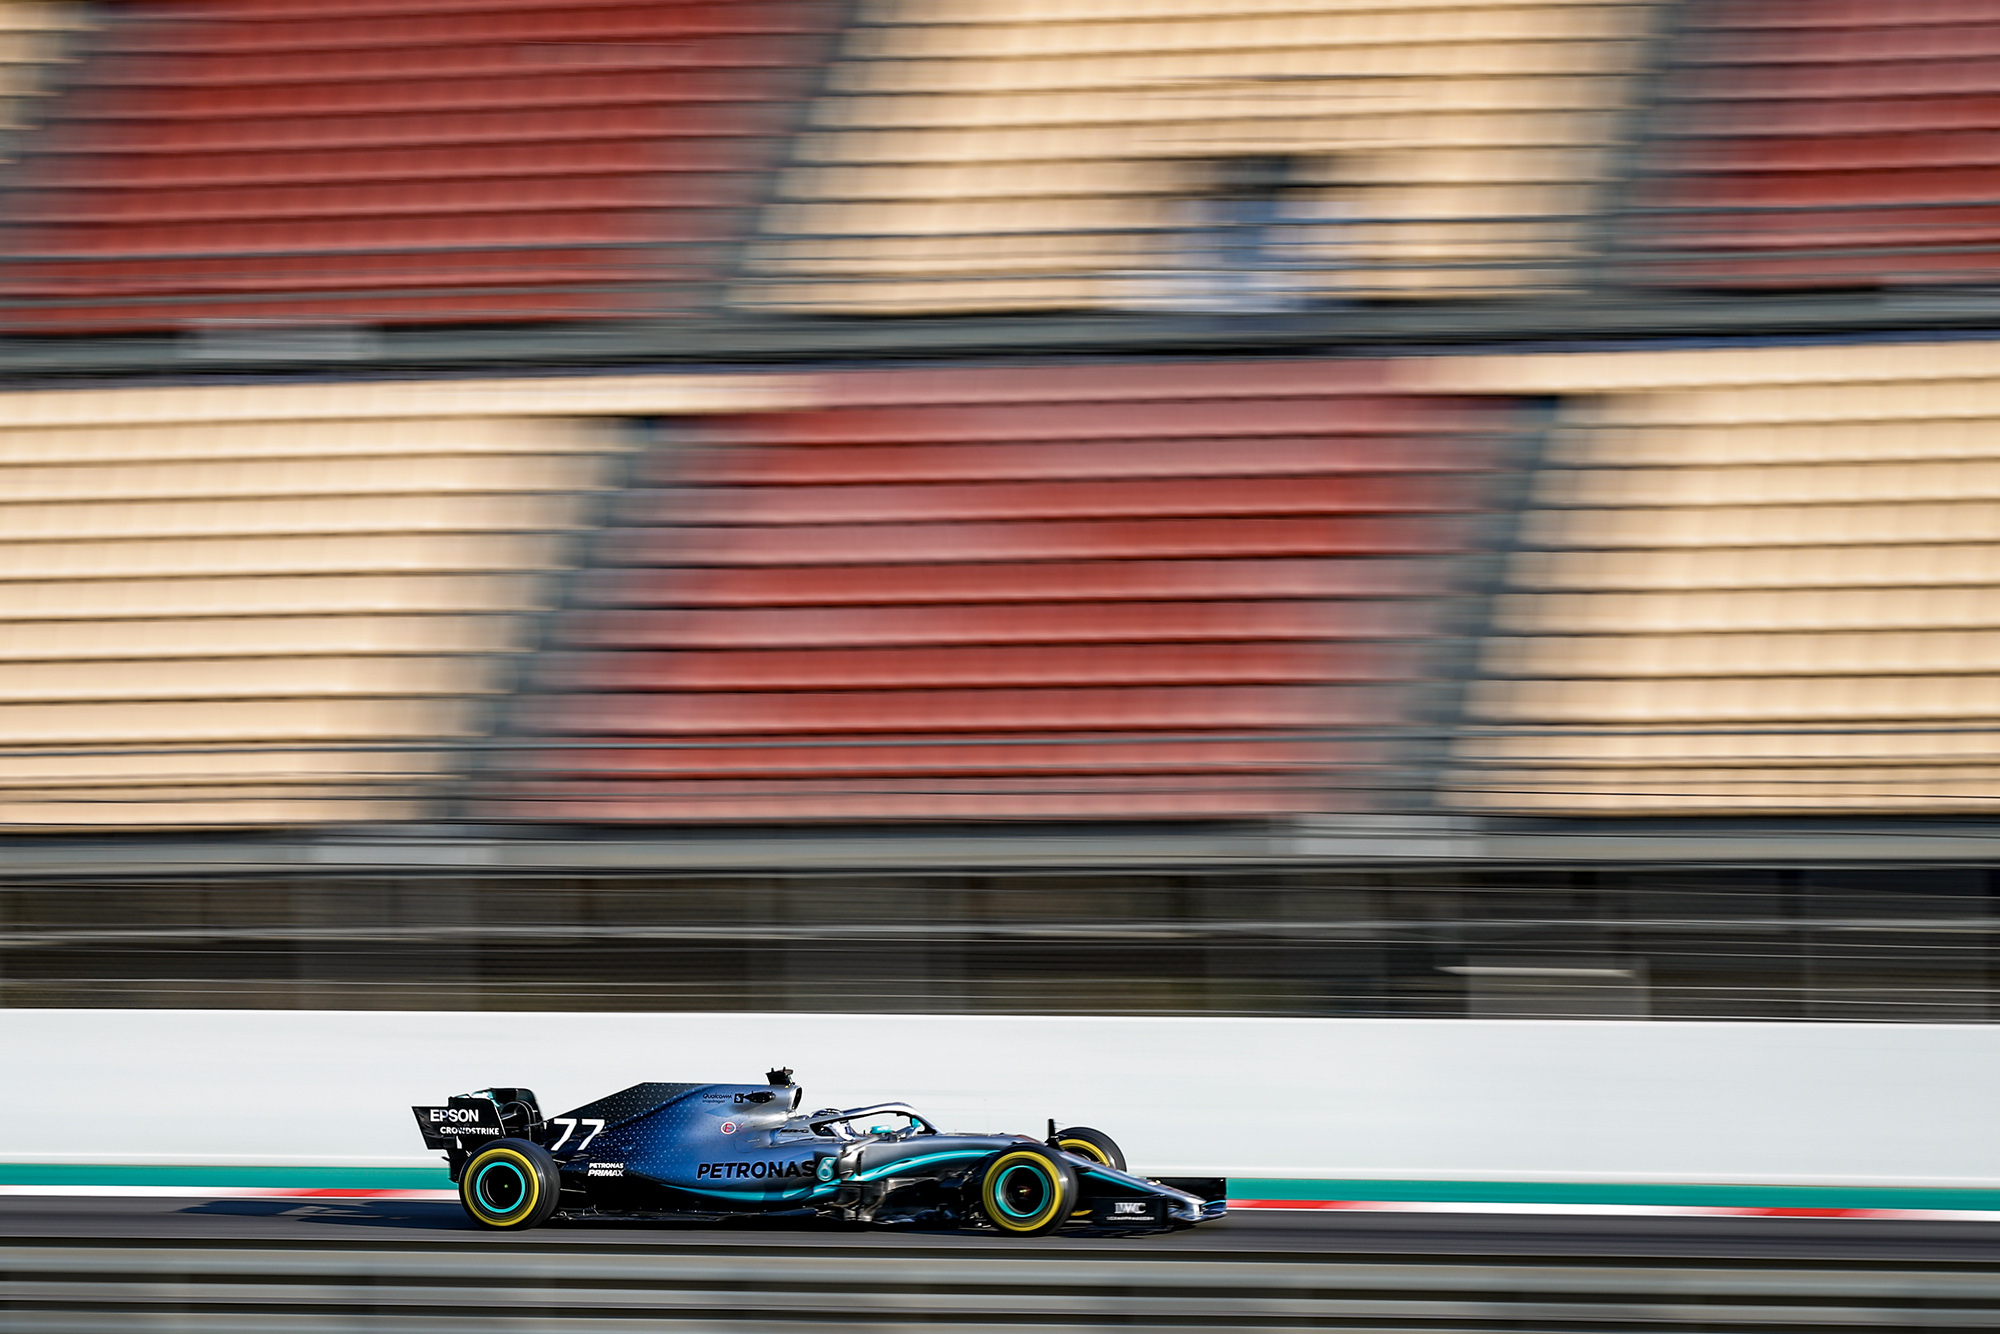 2020 F1 season could start with closed-door races